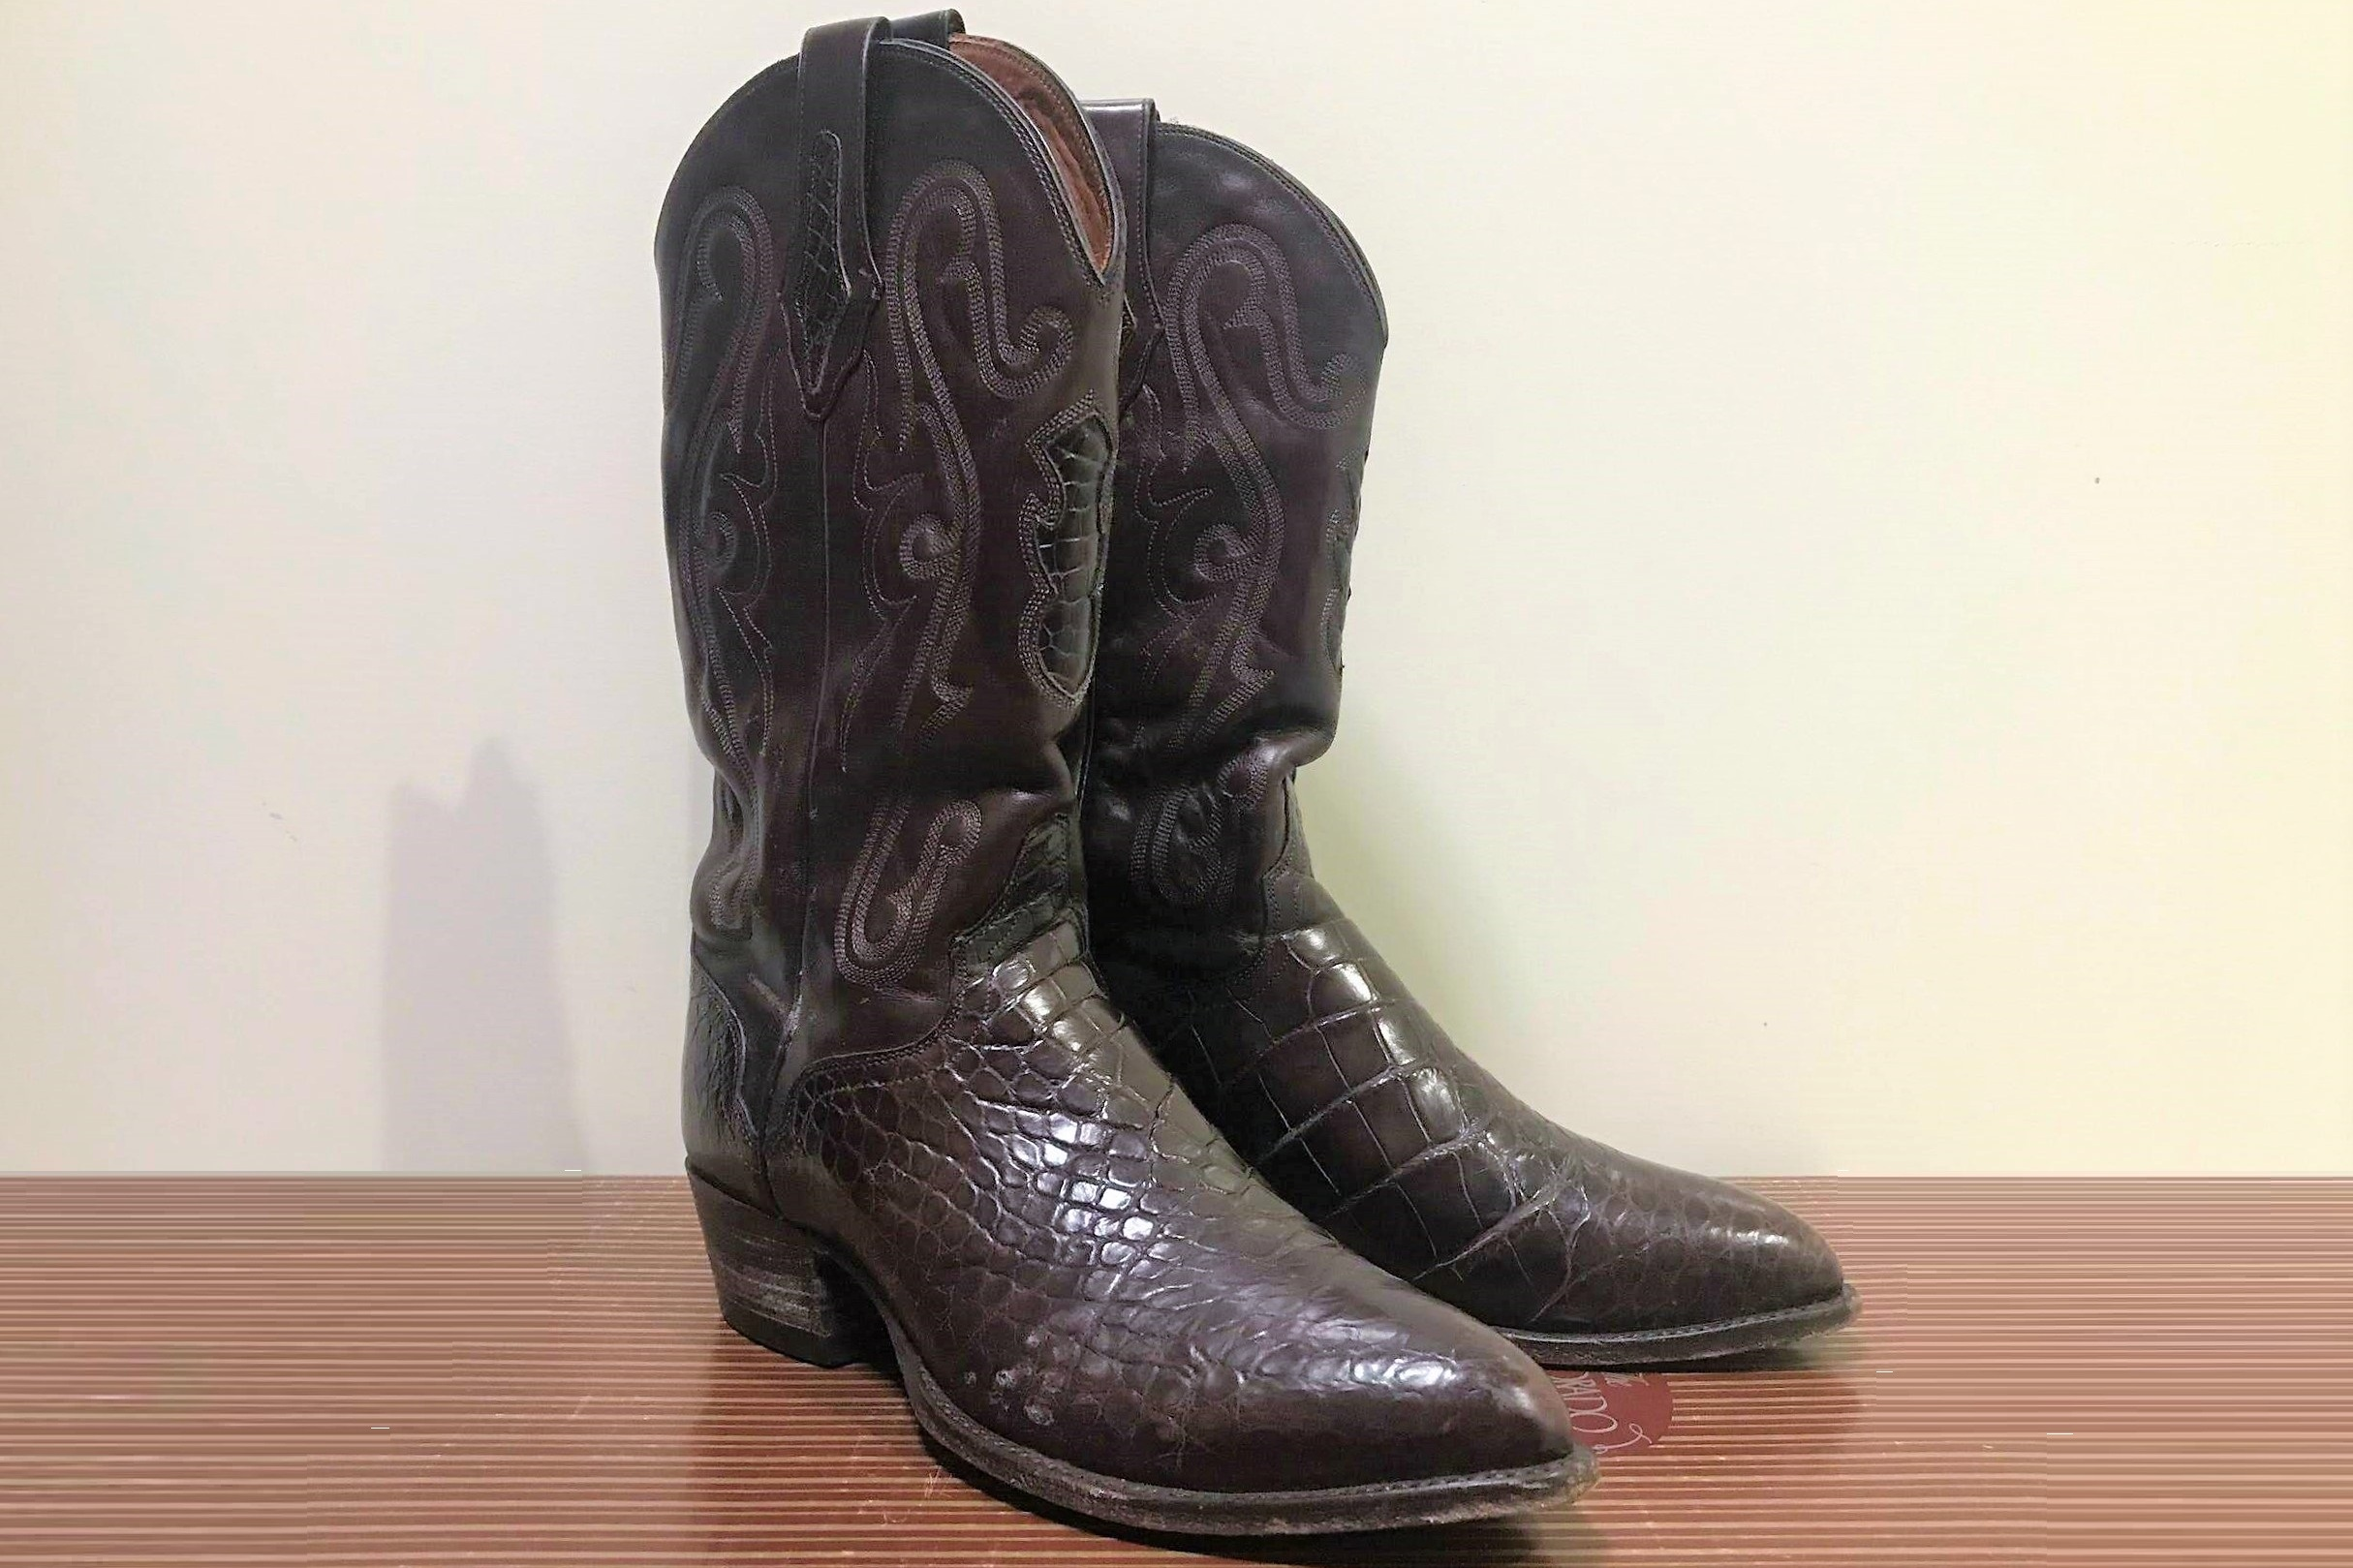 Martin Sheen Alligator Boots - Martin Sheen's alligator boots (size 9.5) donated by the Sheen family.Valued at $730Starting bid $100